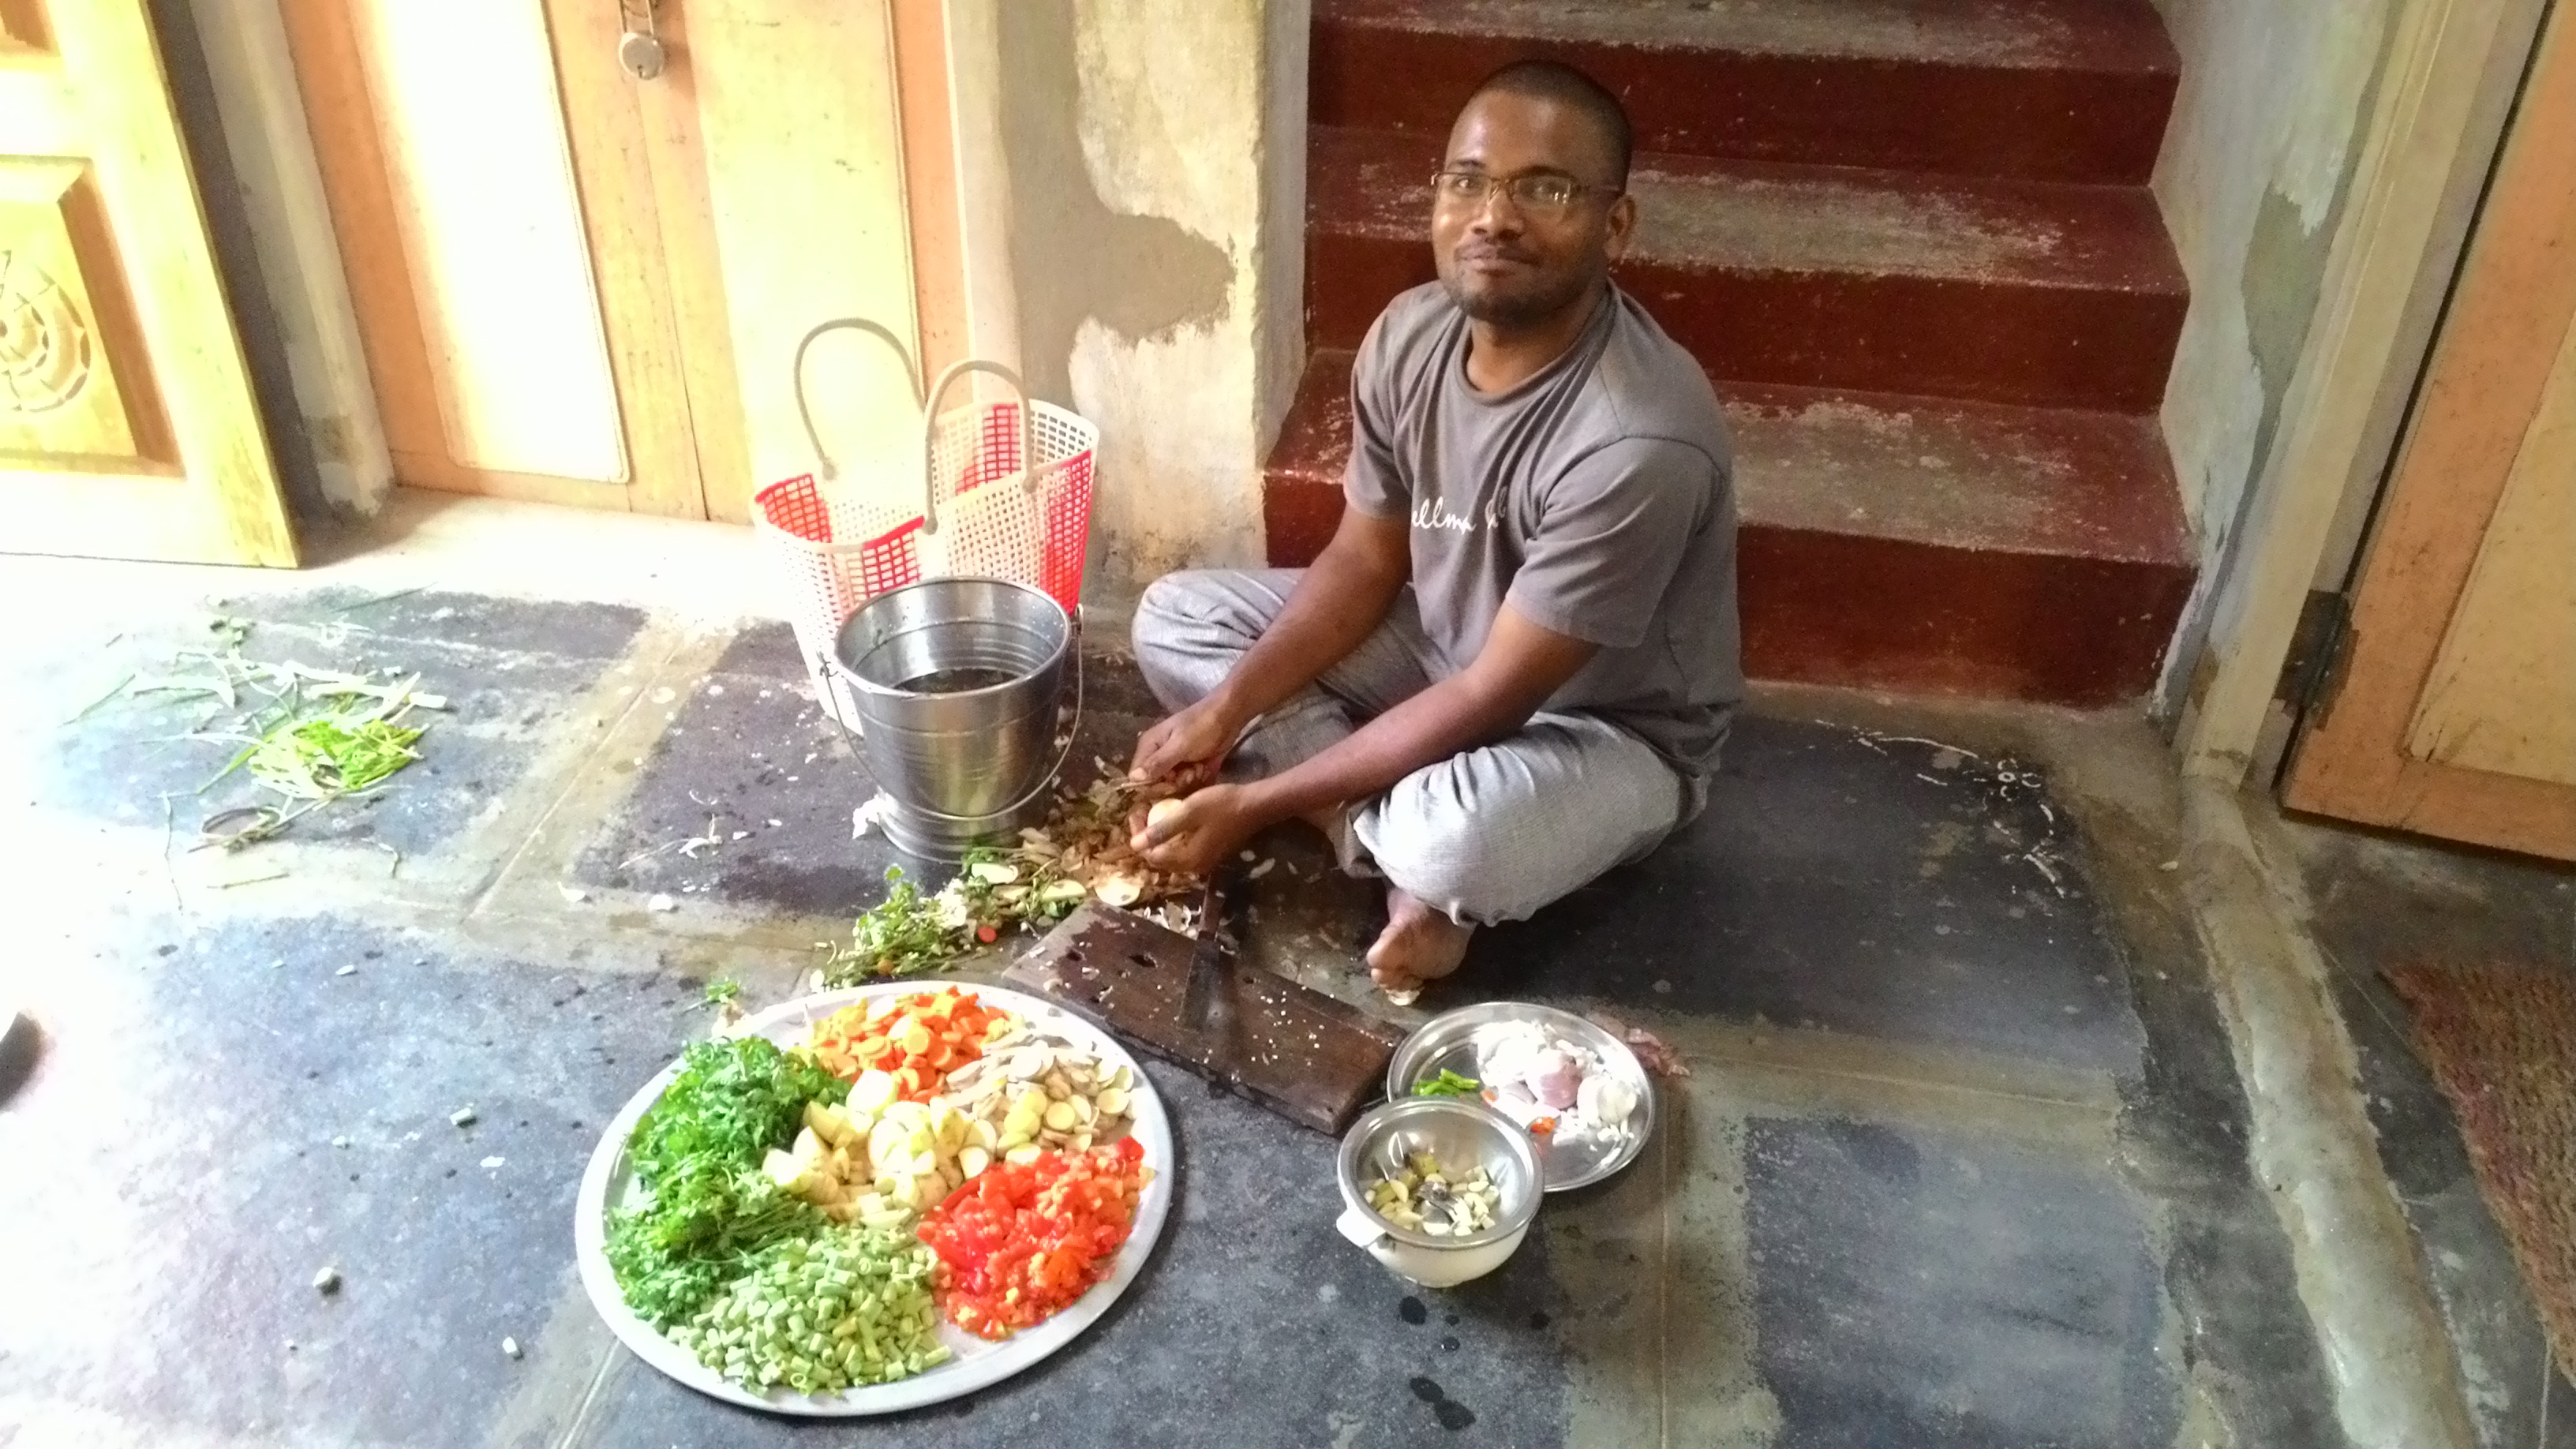 Volunteer Venkat Rao dressing vegetables for evening food.